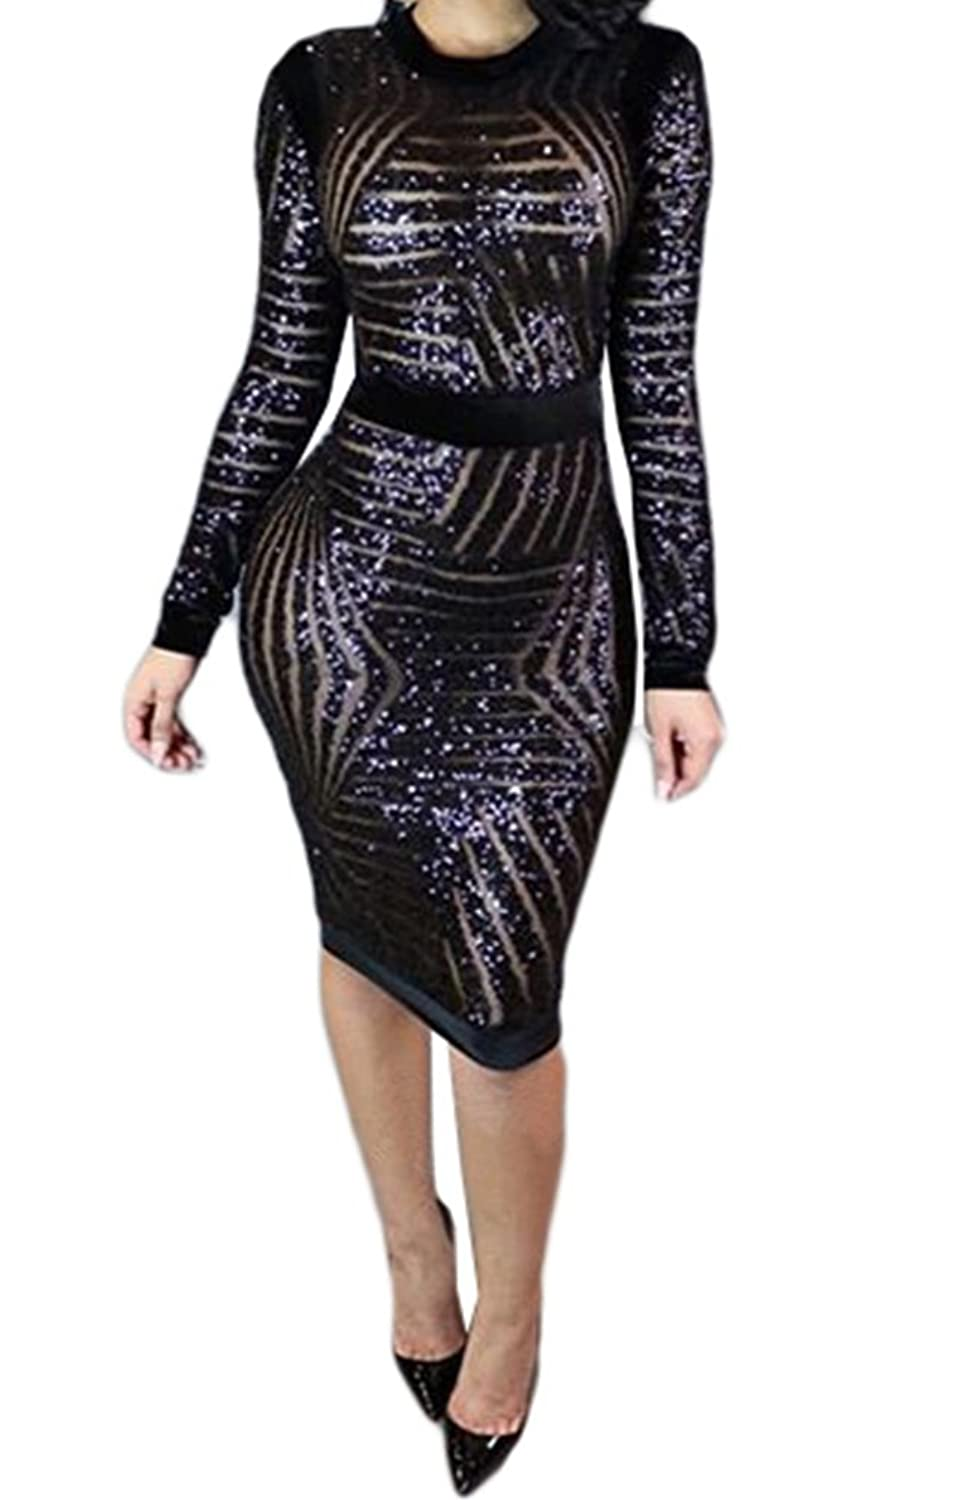 Women Sexy Sequin Mesh Long Sleeve Scoop Neck Bodycon Clubwear Party Midi Dress